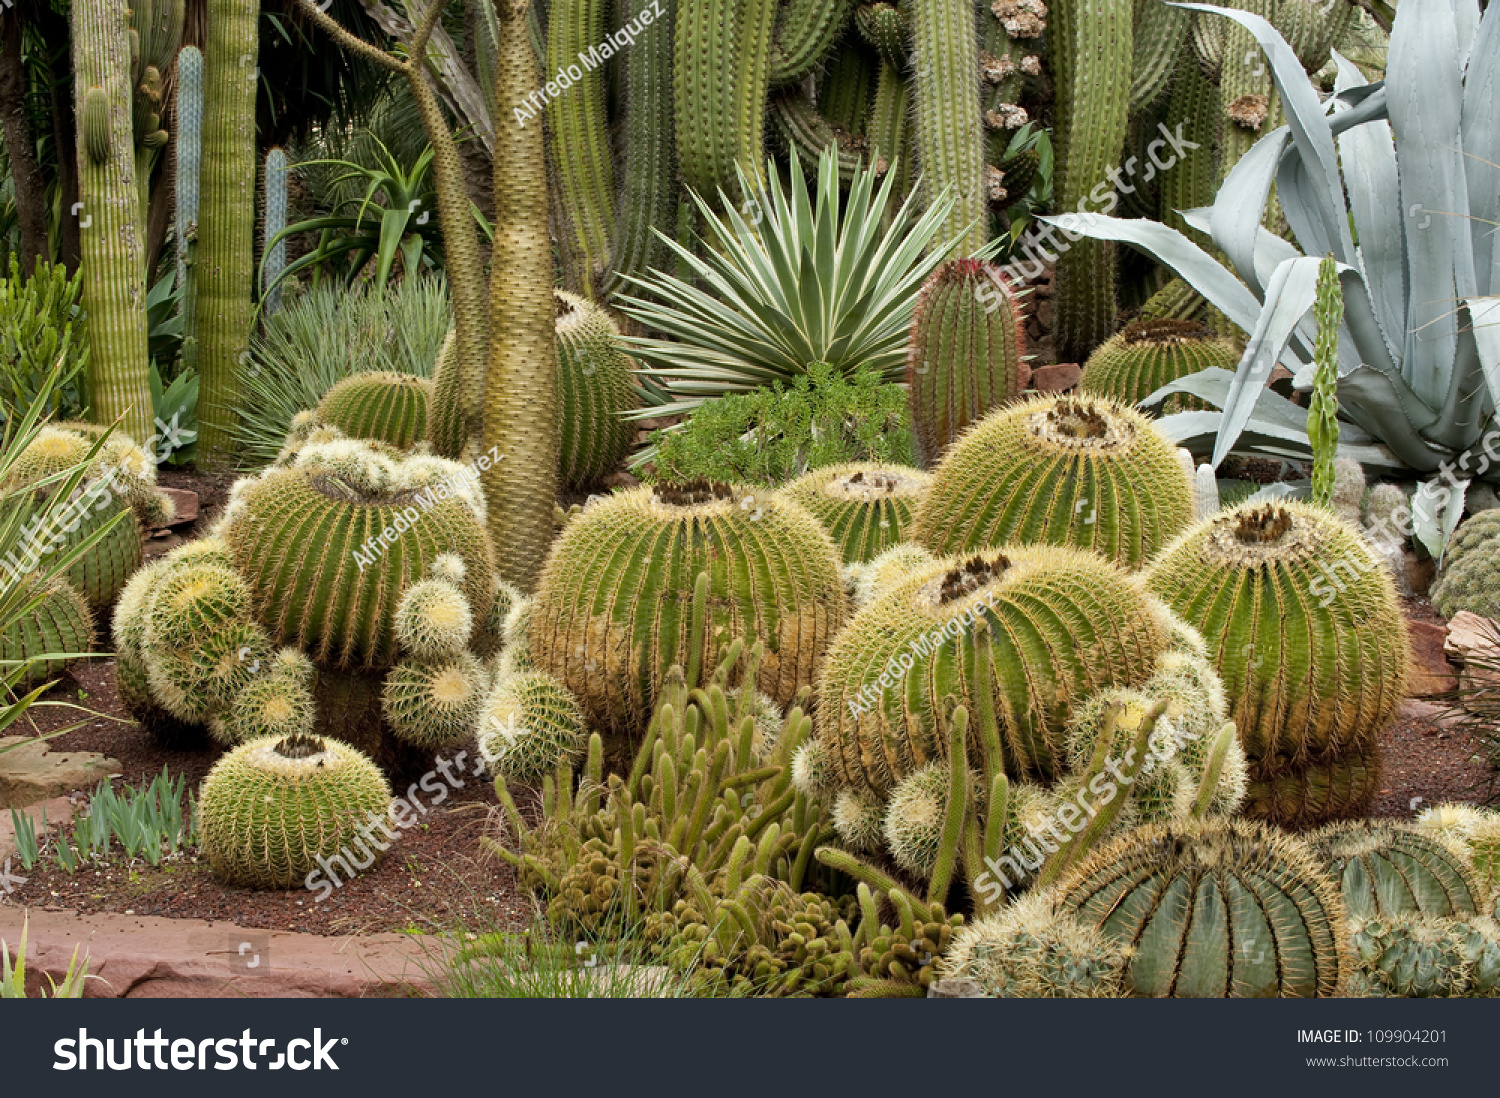 Cactus Garden El Huerto Del Cura Stock Photo 109904201 ...